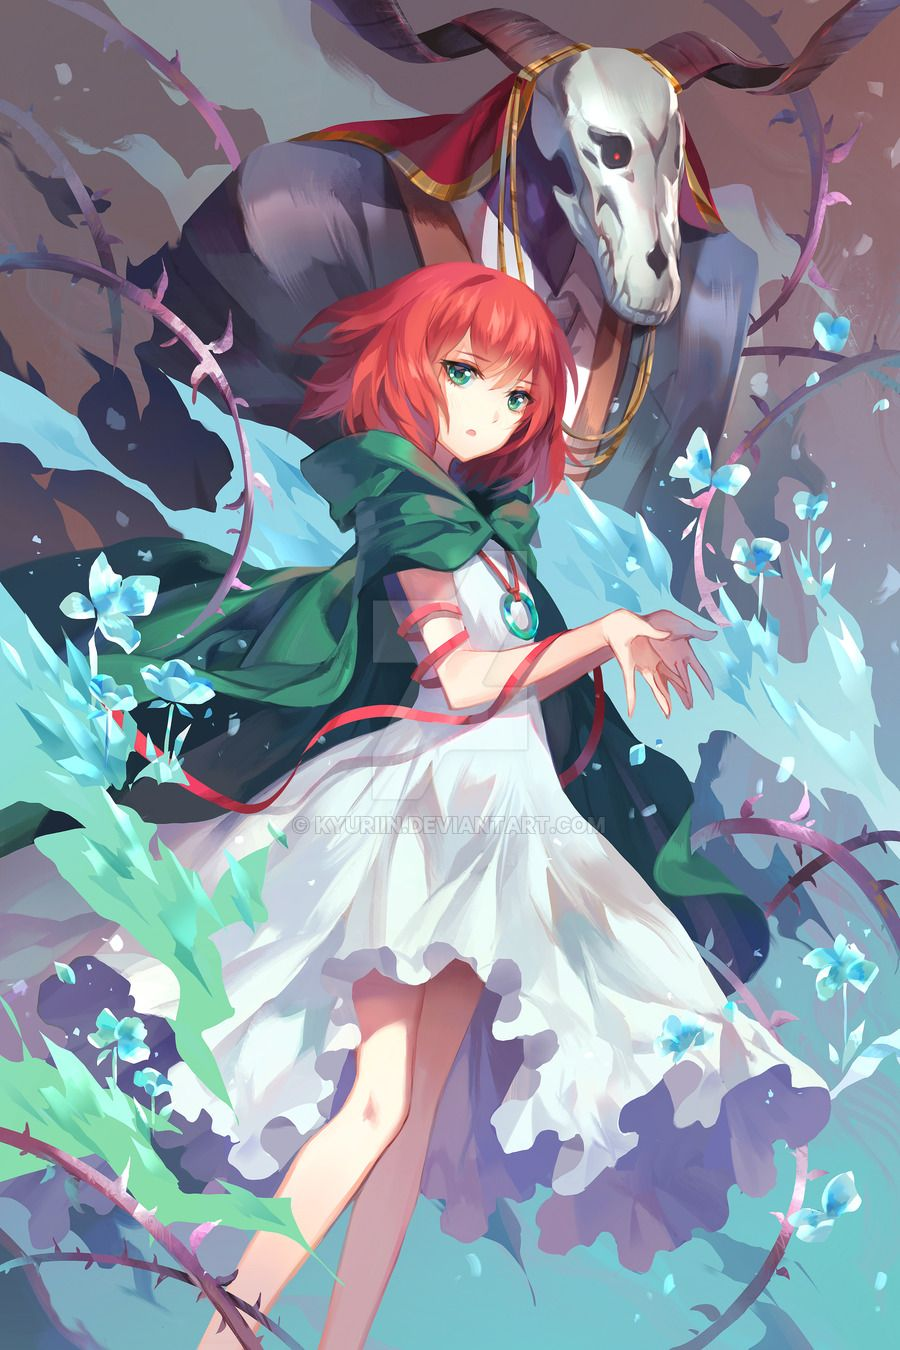 Pin By Merielle Richards On Japanese Ancient Magus Bride Anime Anime Images